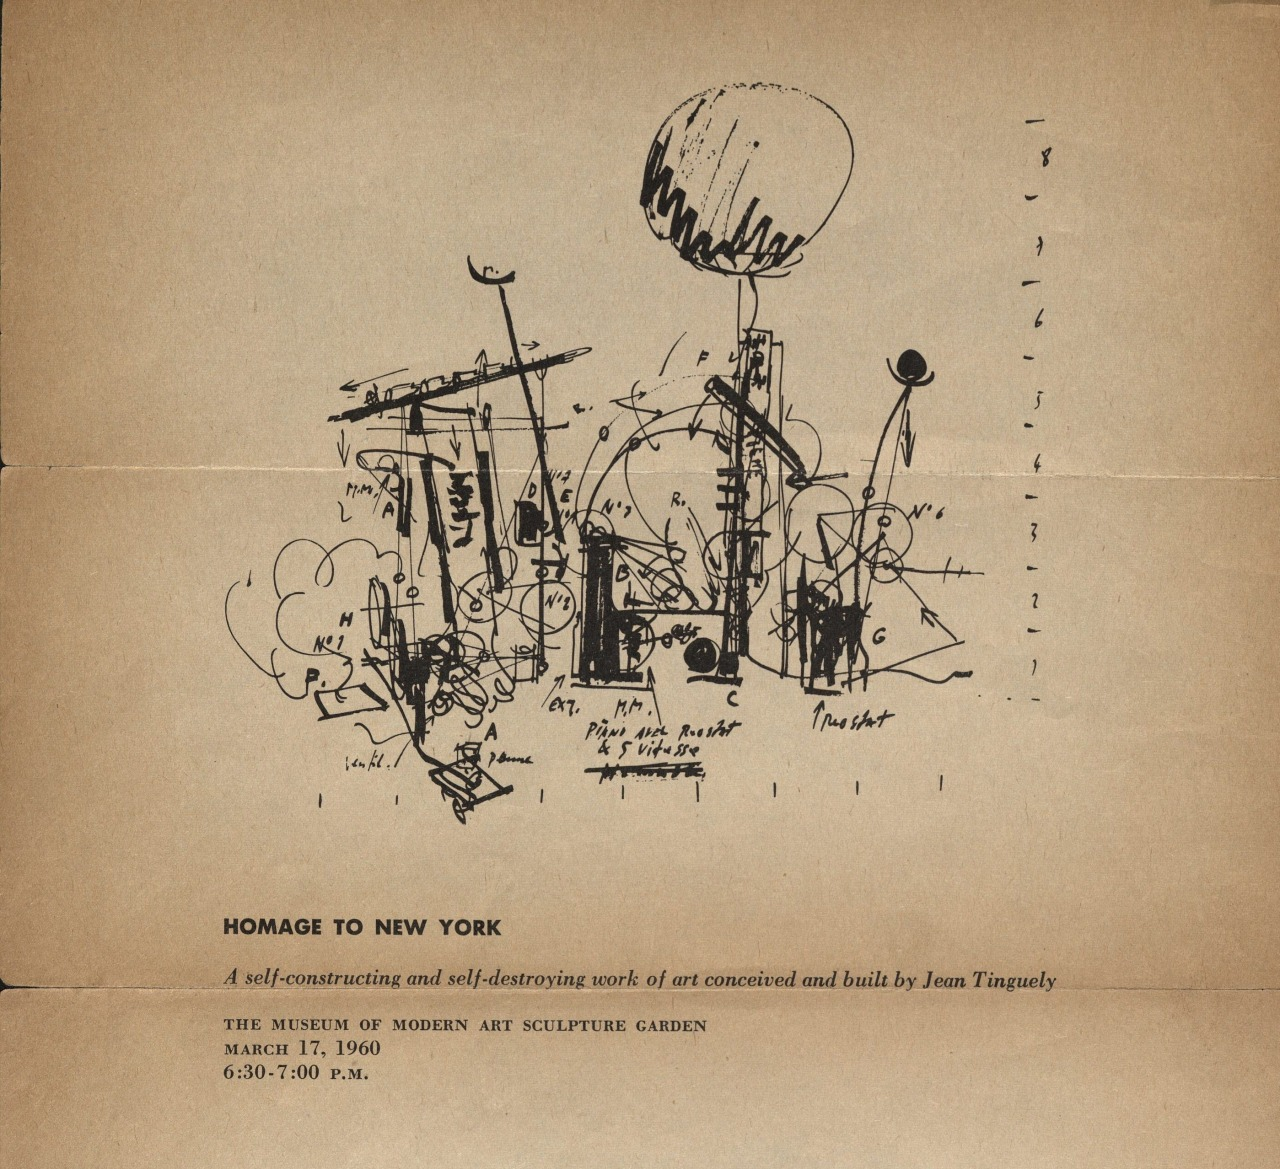 pleasecometotheshow:  A section of the broadside made for Jean Tinguely's Homage to New York at MoMA (1960).